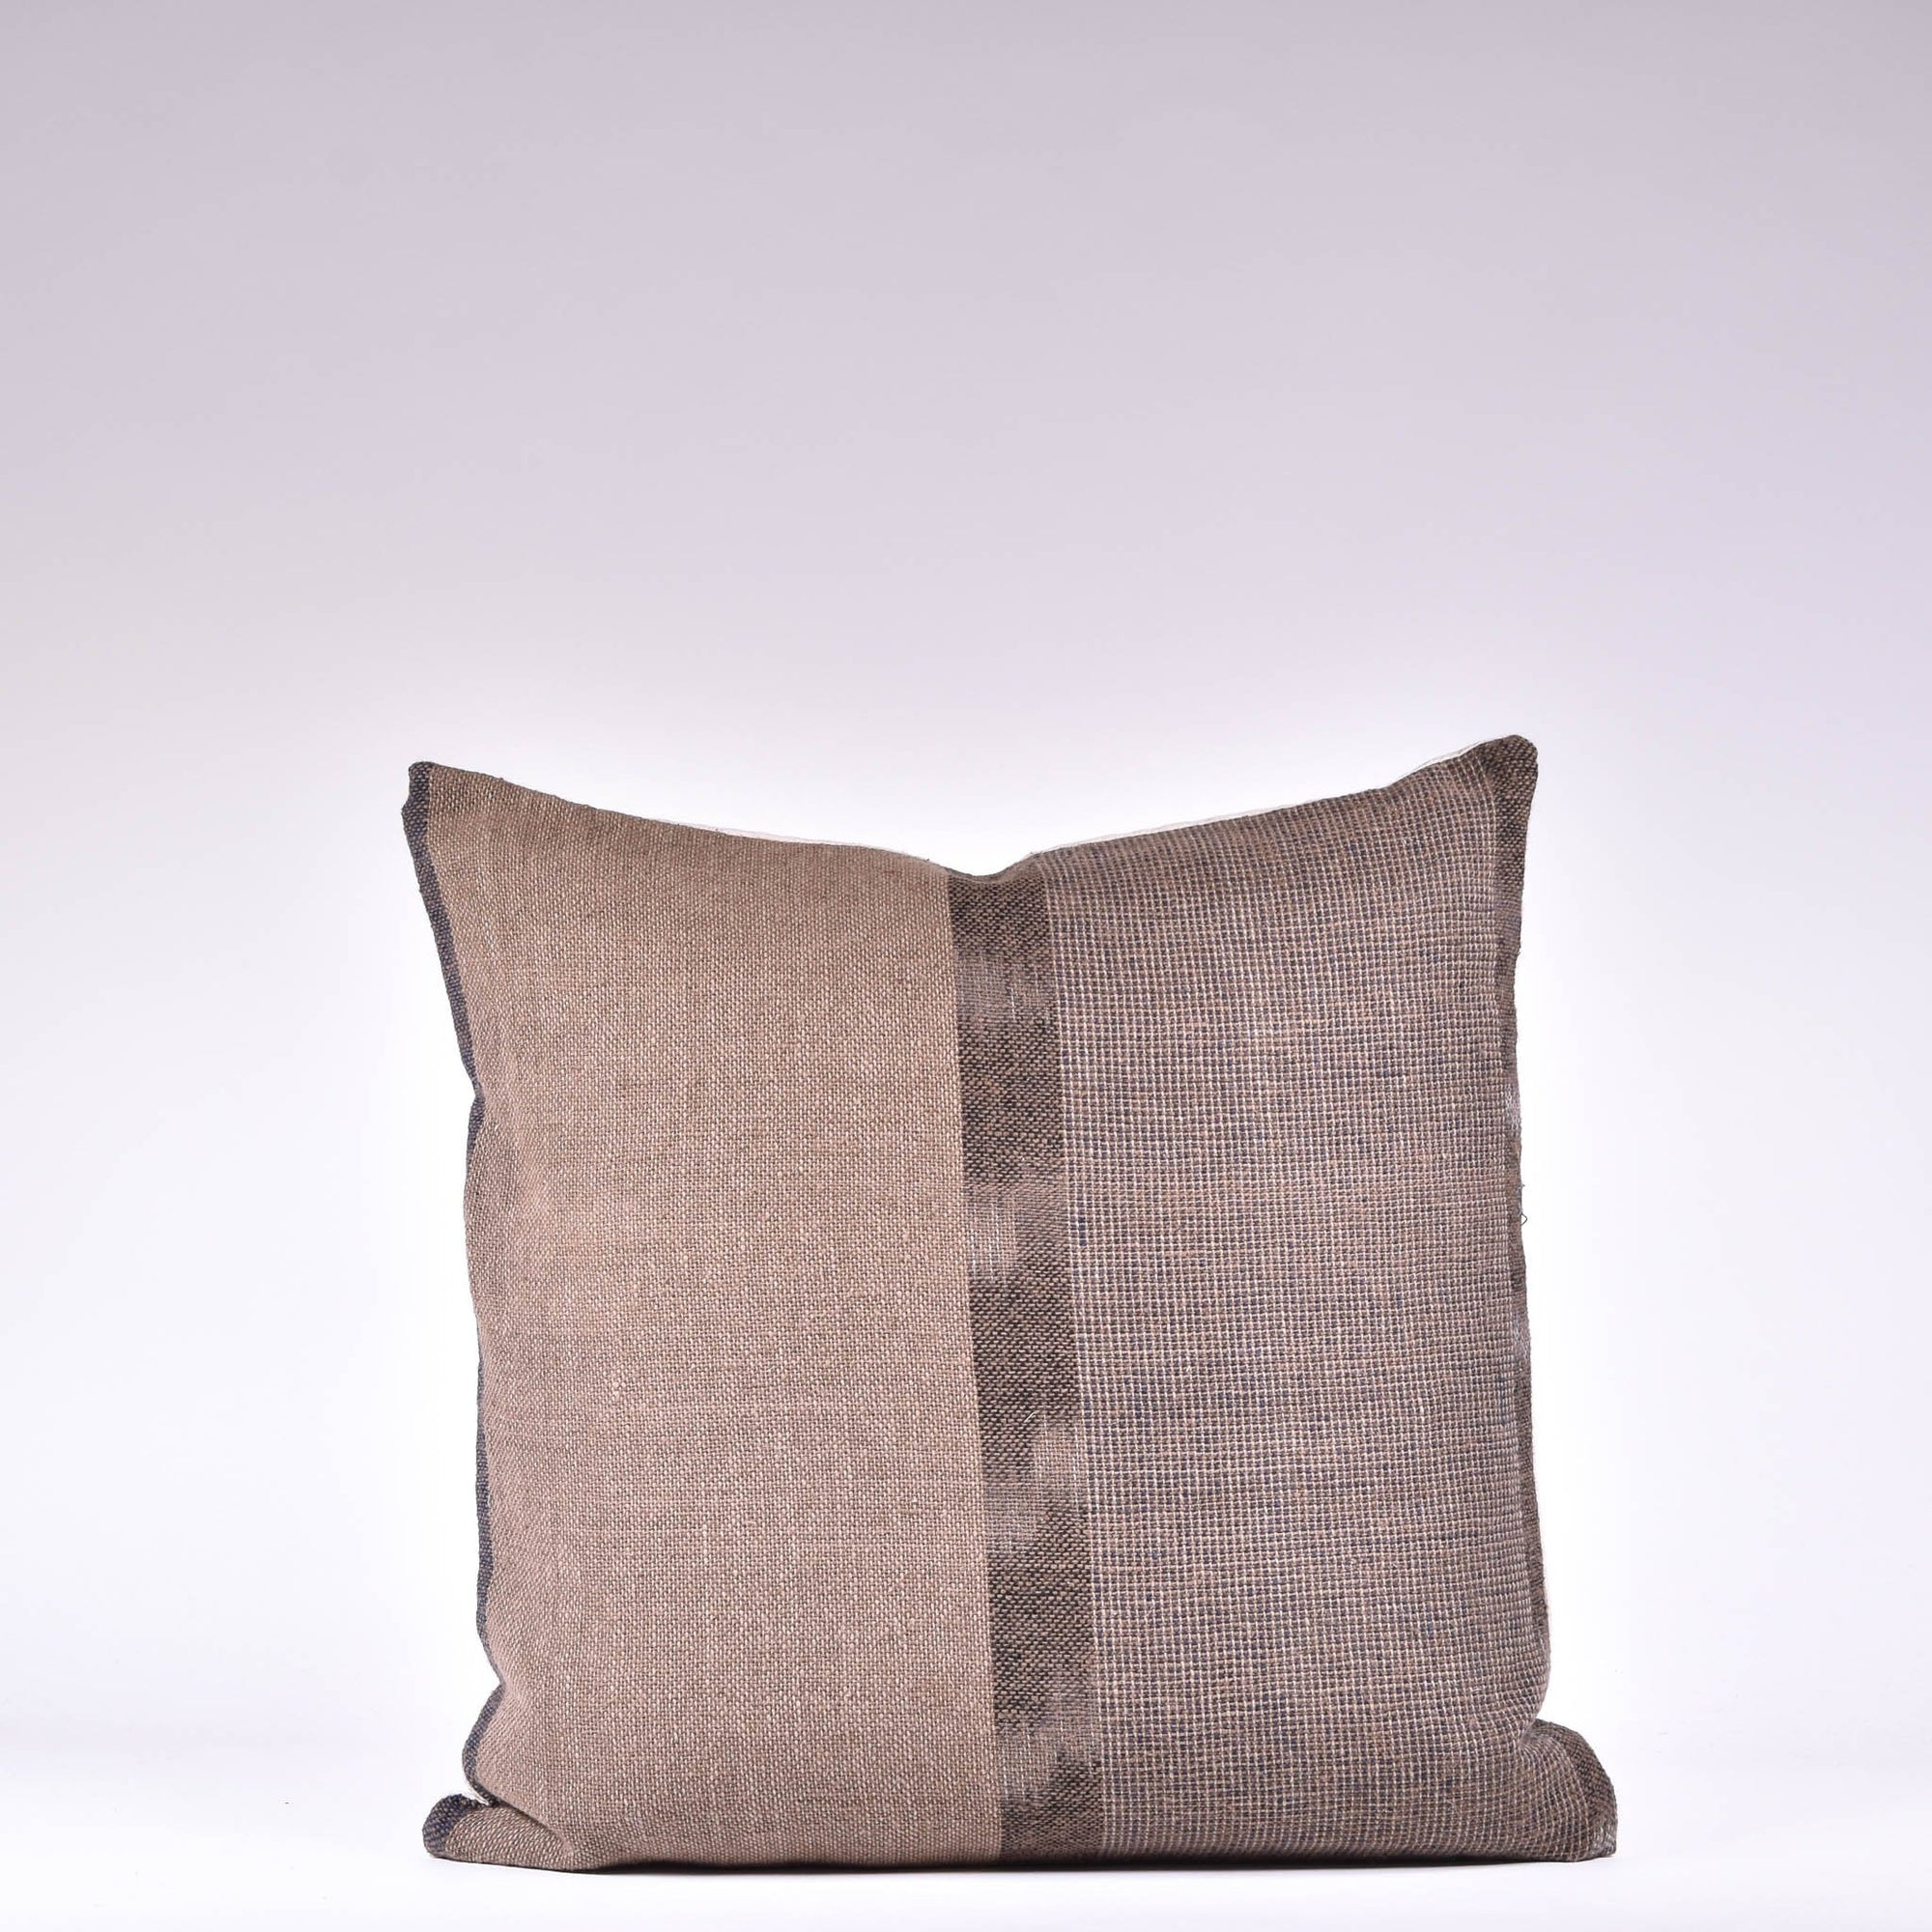 Chomthong Thai Pillow - Rug & Weave